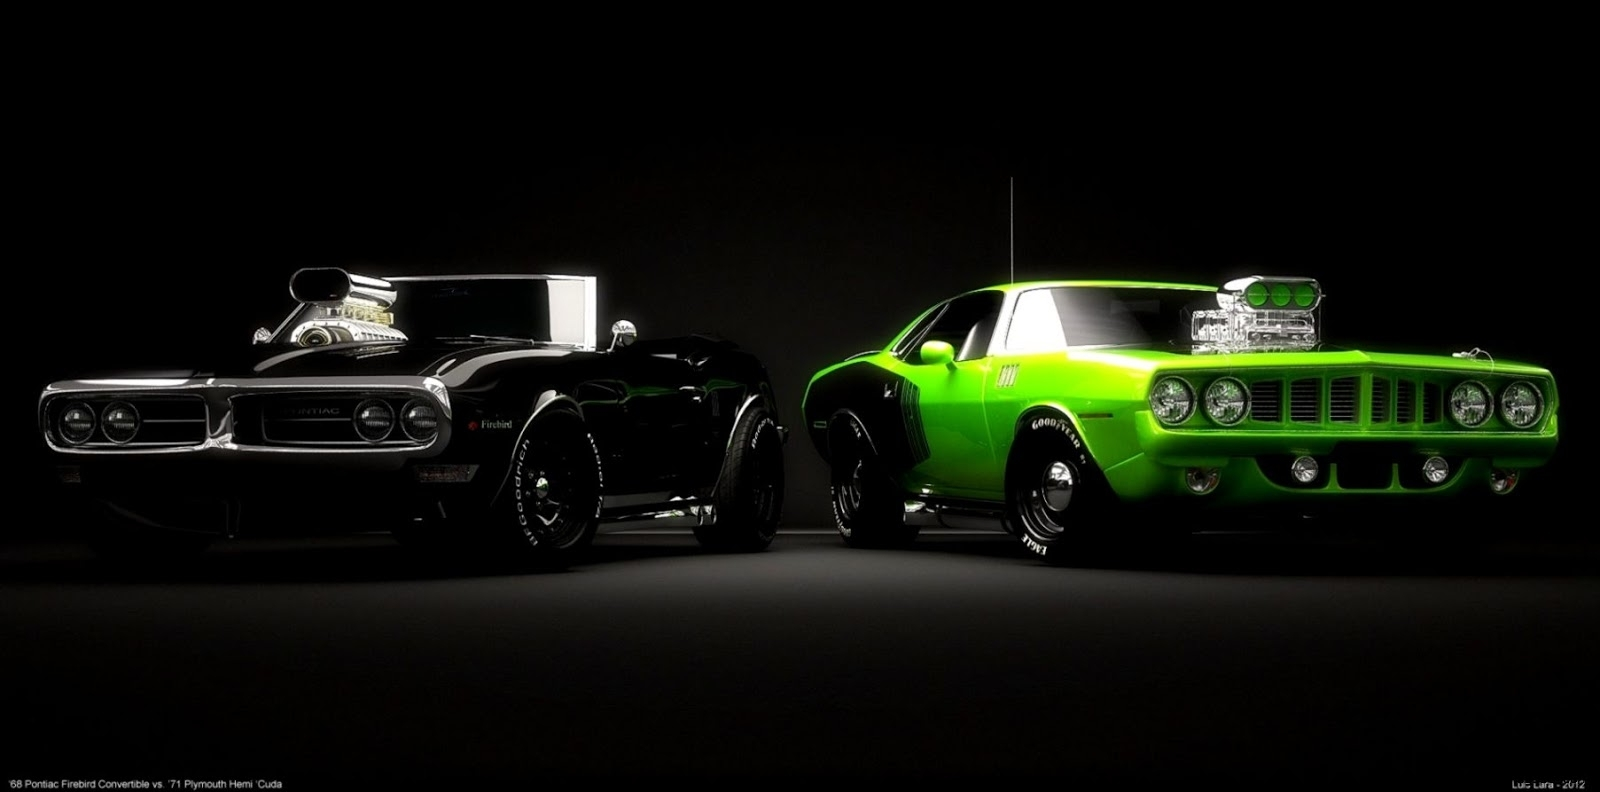 10 Most Popular Cool Muscle Car Wallpapers Full Hd 19201080 For Pc